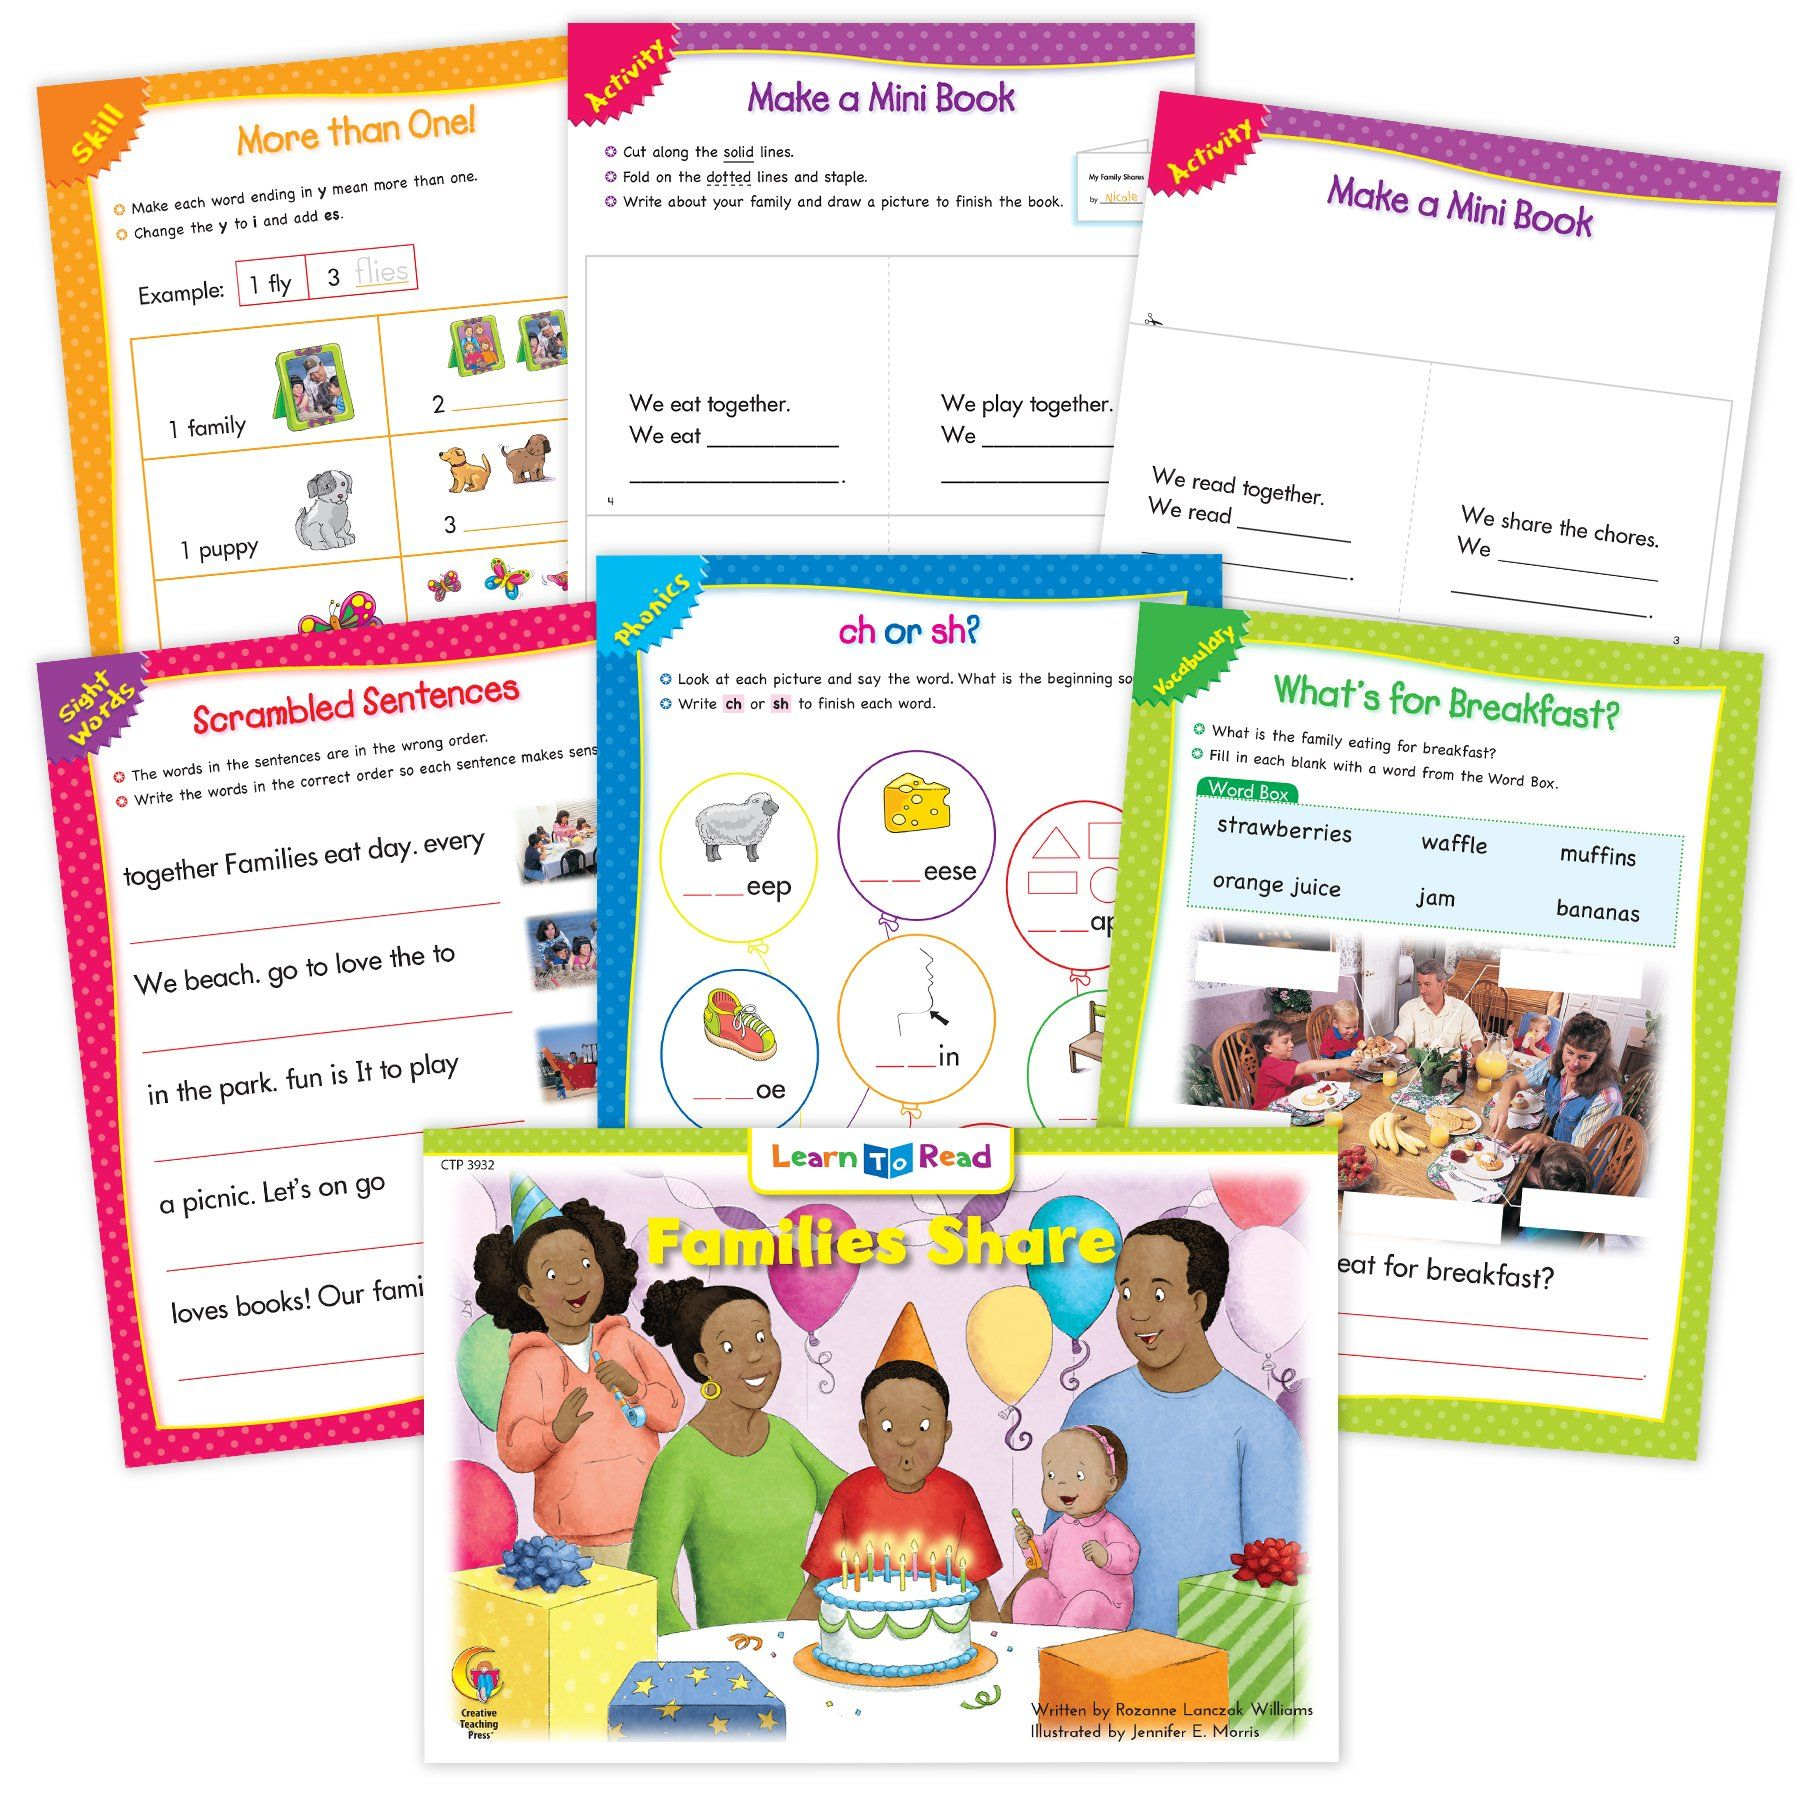 Families Share Ebook Amp Worksheets In